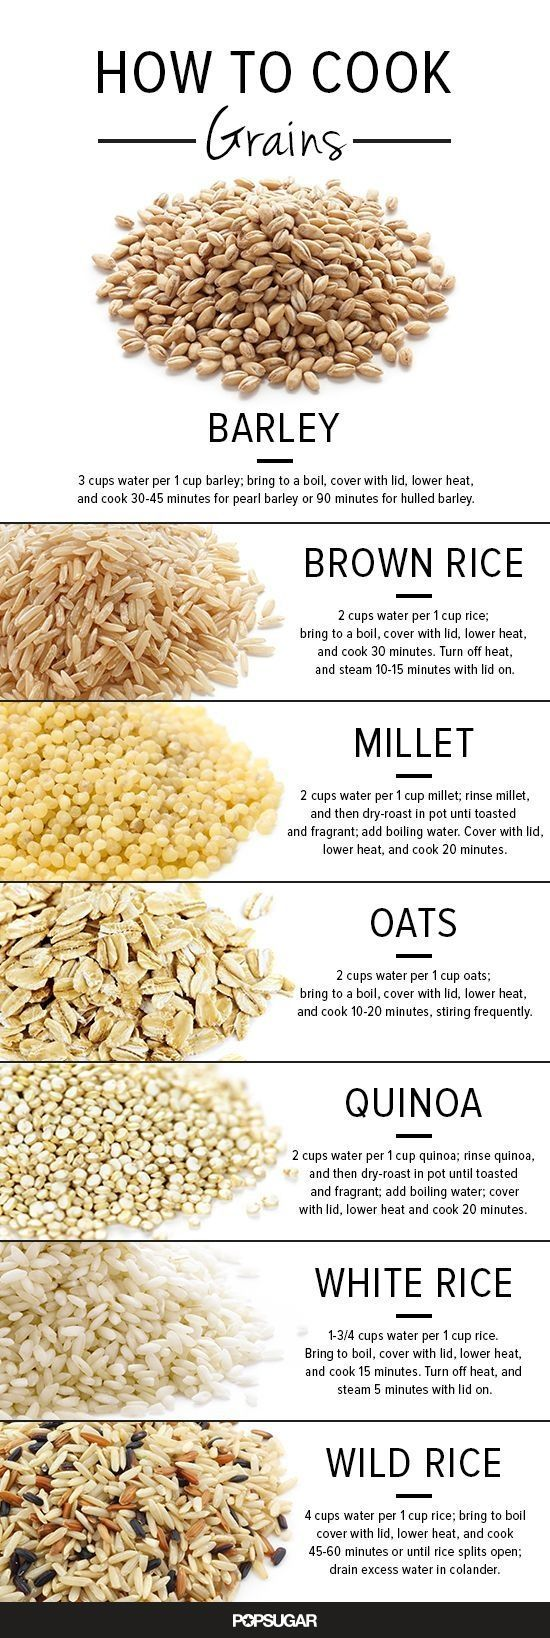 This is the most comprehensive ultimate food guide ever created, you will never it because it's too long, but you feel healthy just by liking it and sharing